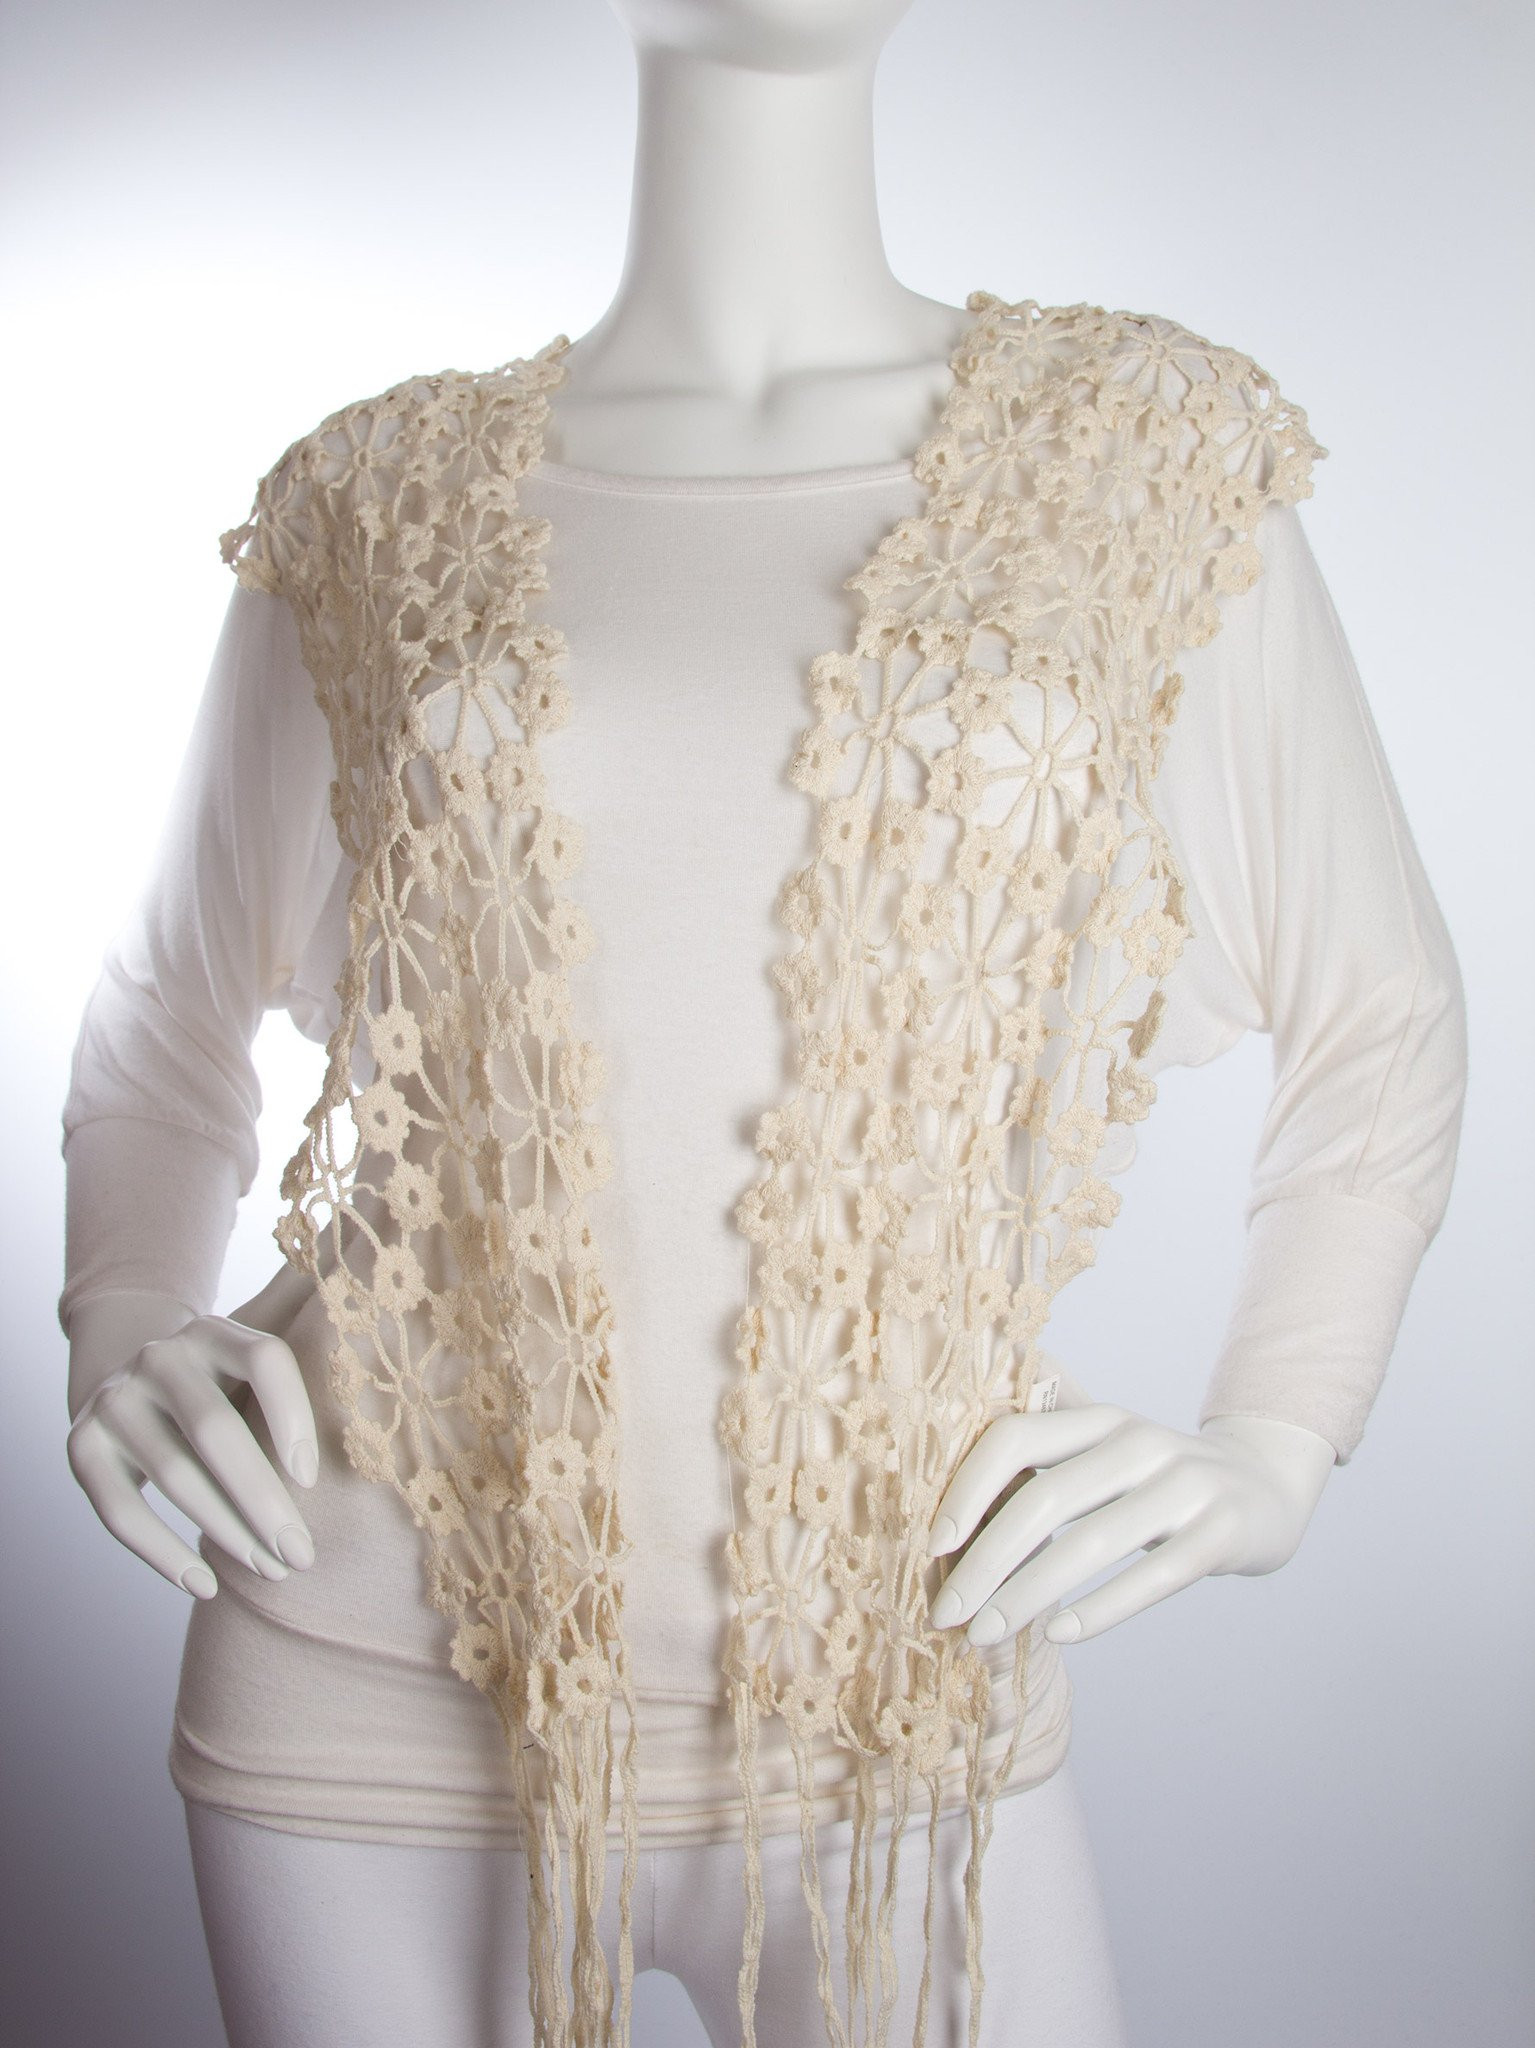 New Daisy Scarf Crochet Lace Scarf Skinny Scarf Floral Crochet Lace Scarf Of Incredible 41 Models Crochet Lace Scarf